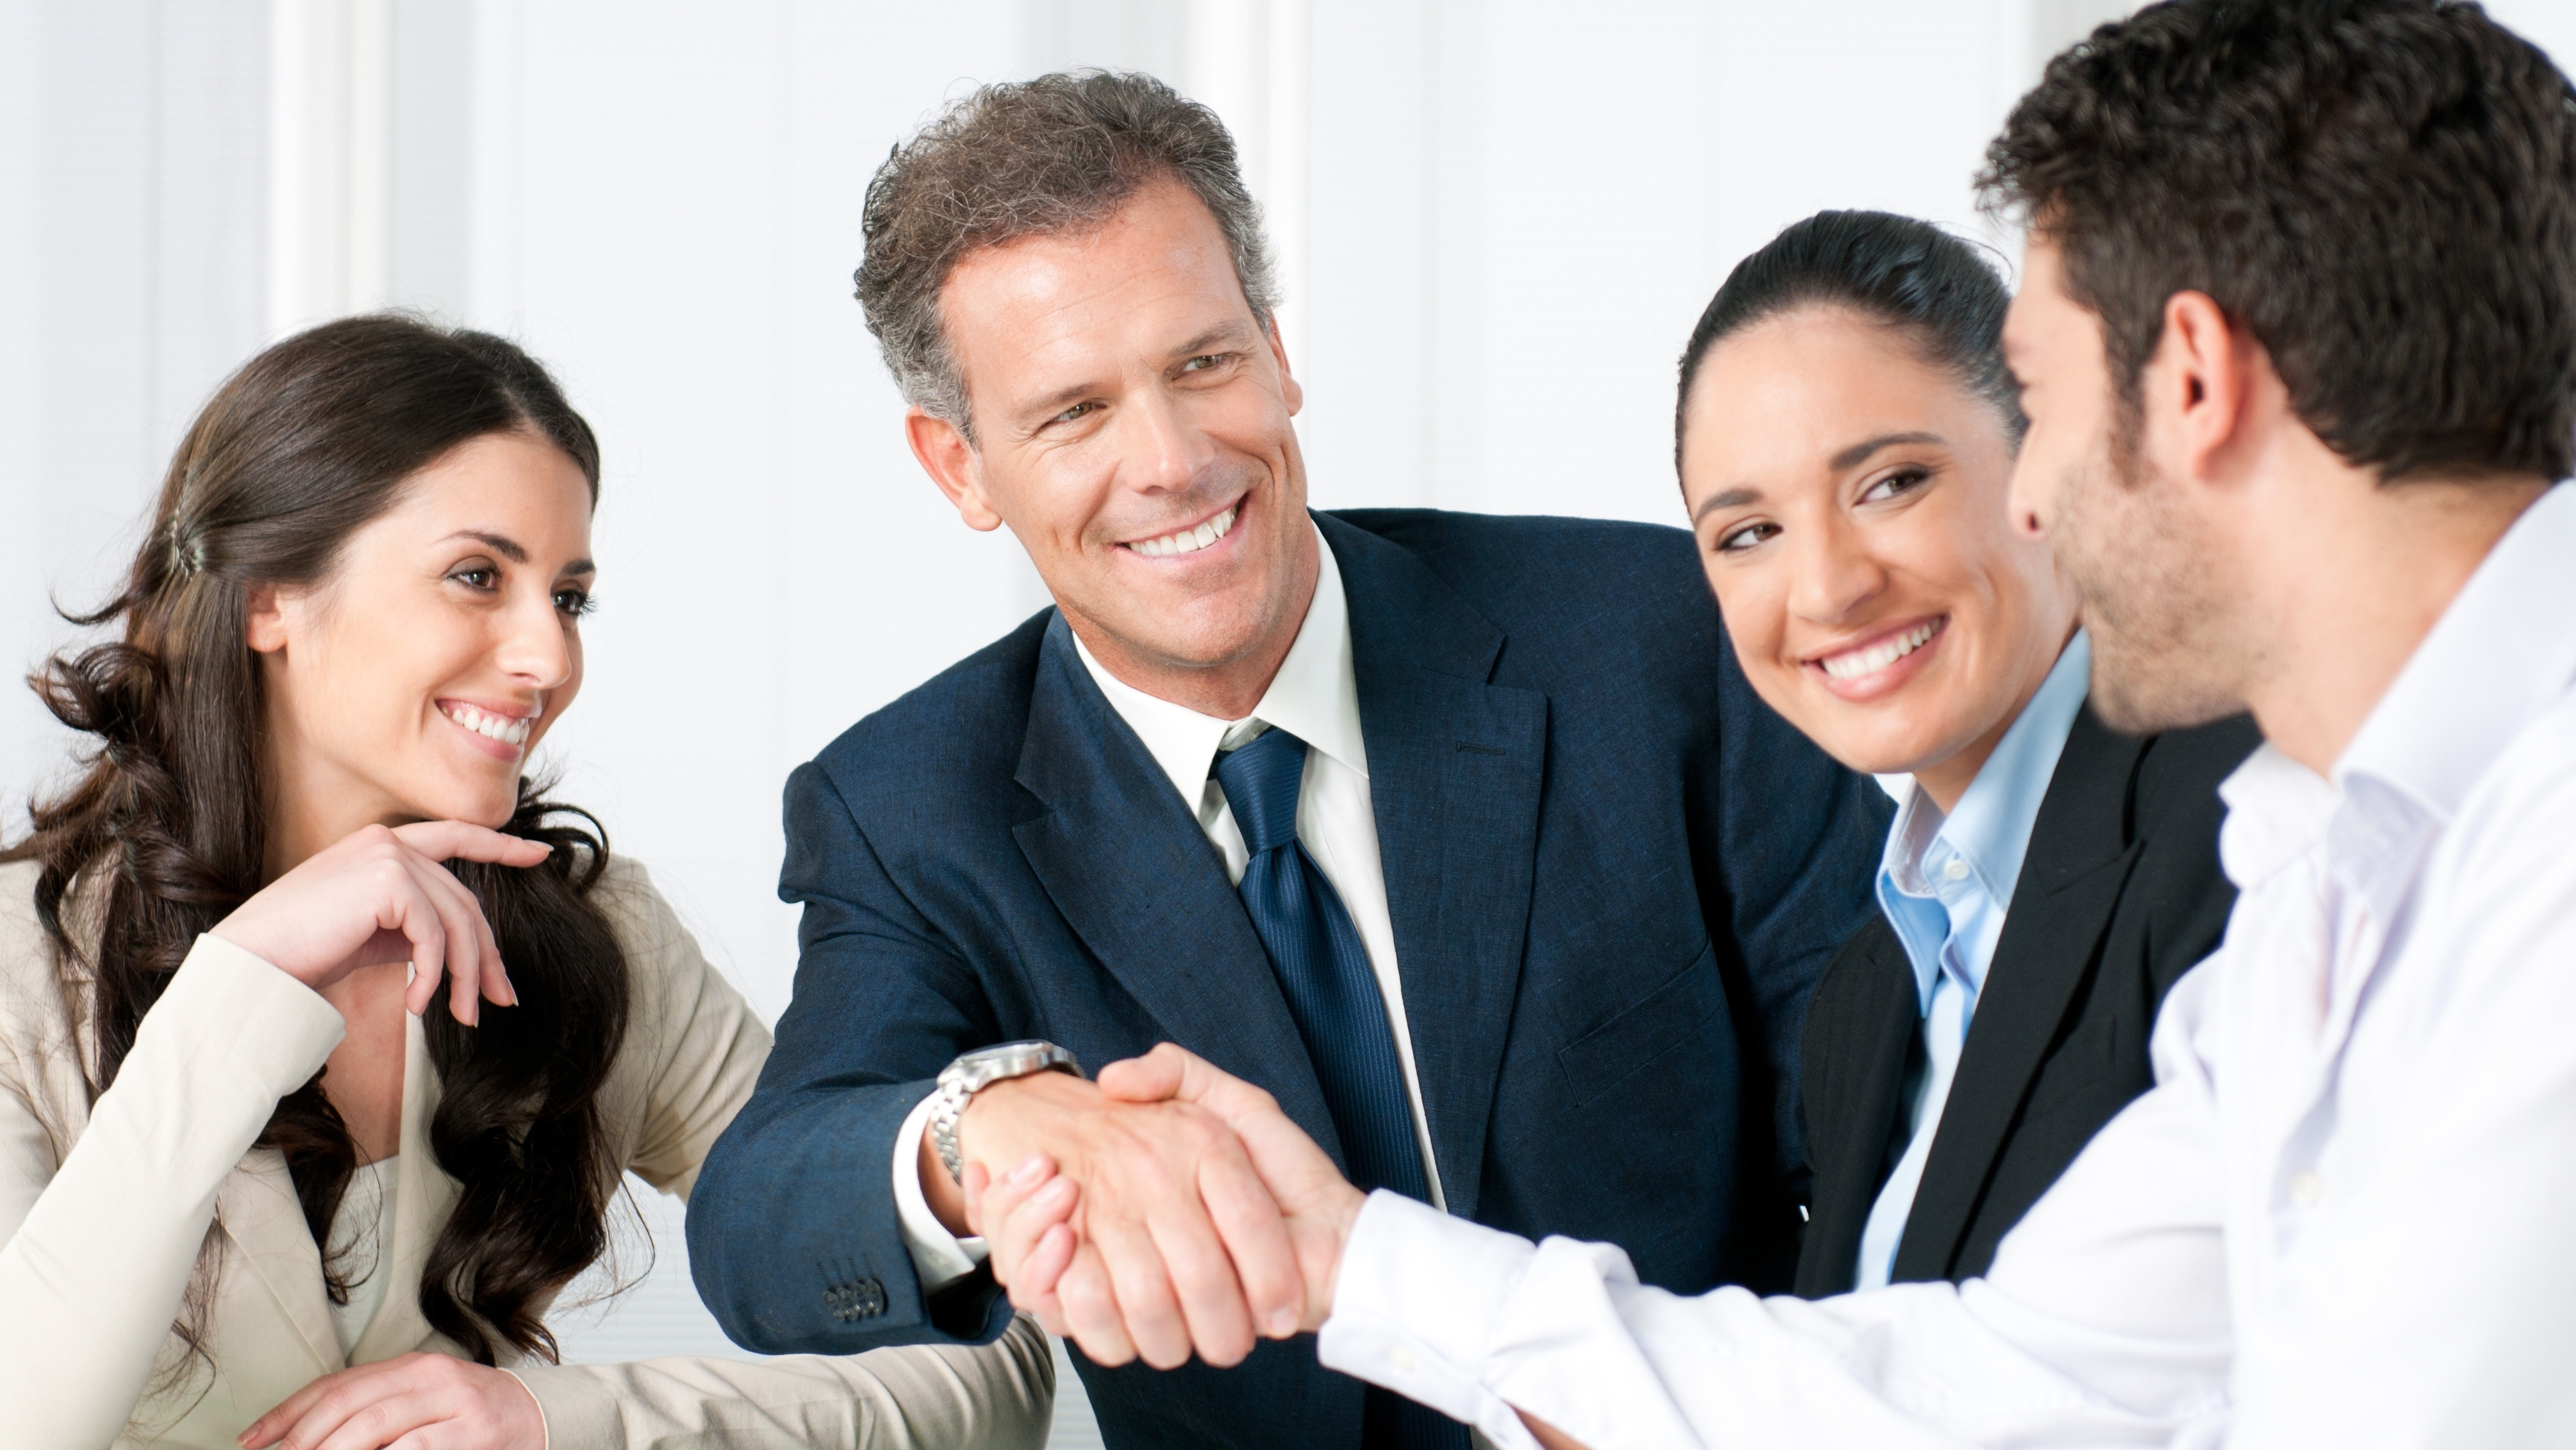 Face To Face Business Meeting-967022-edited